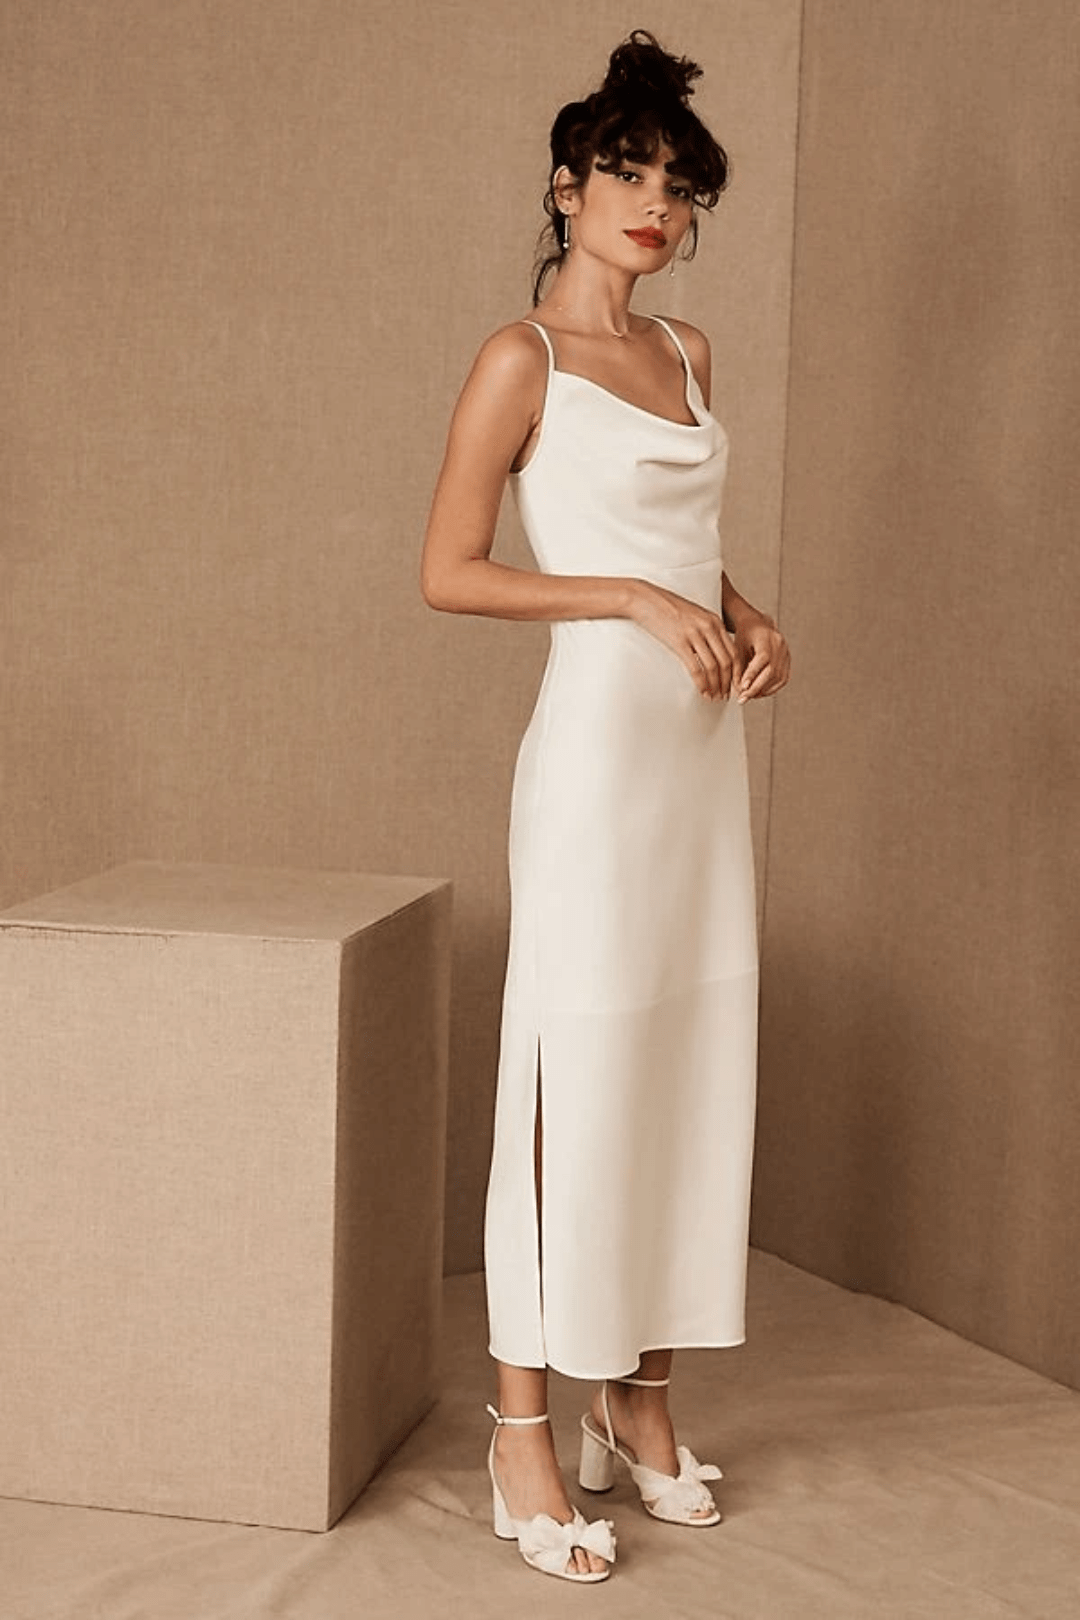 Anthropologie-cityhall-wedding-dress